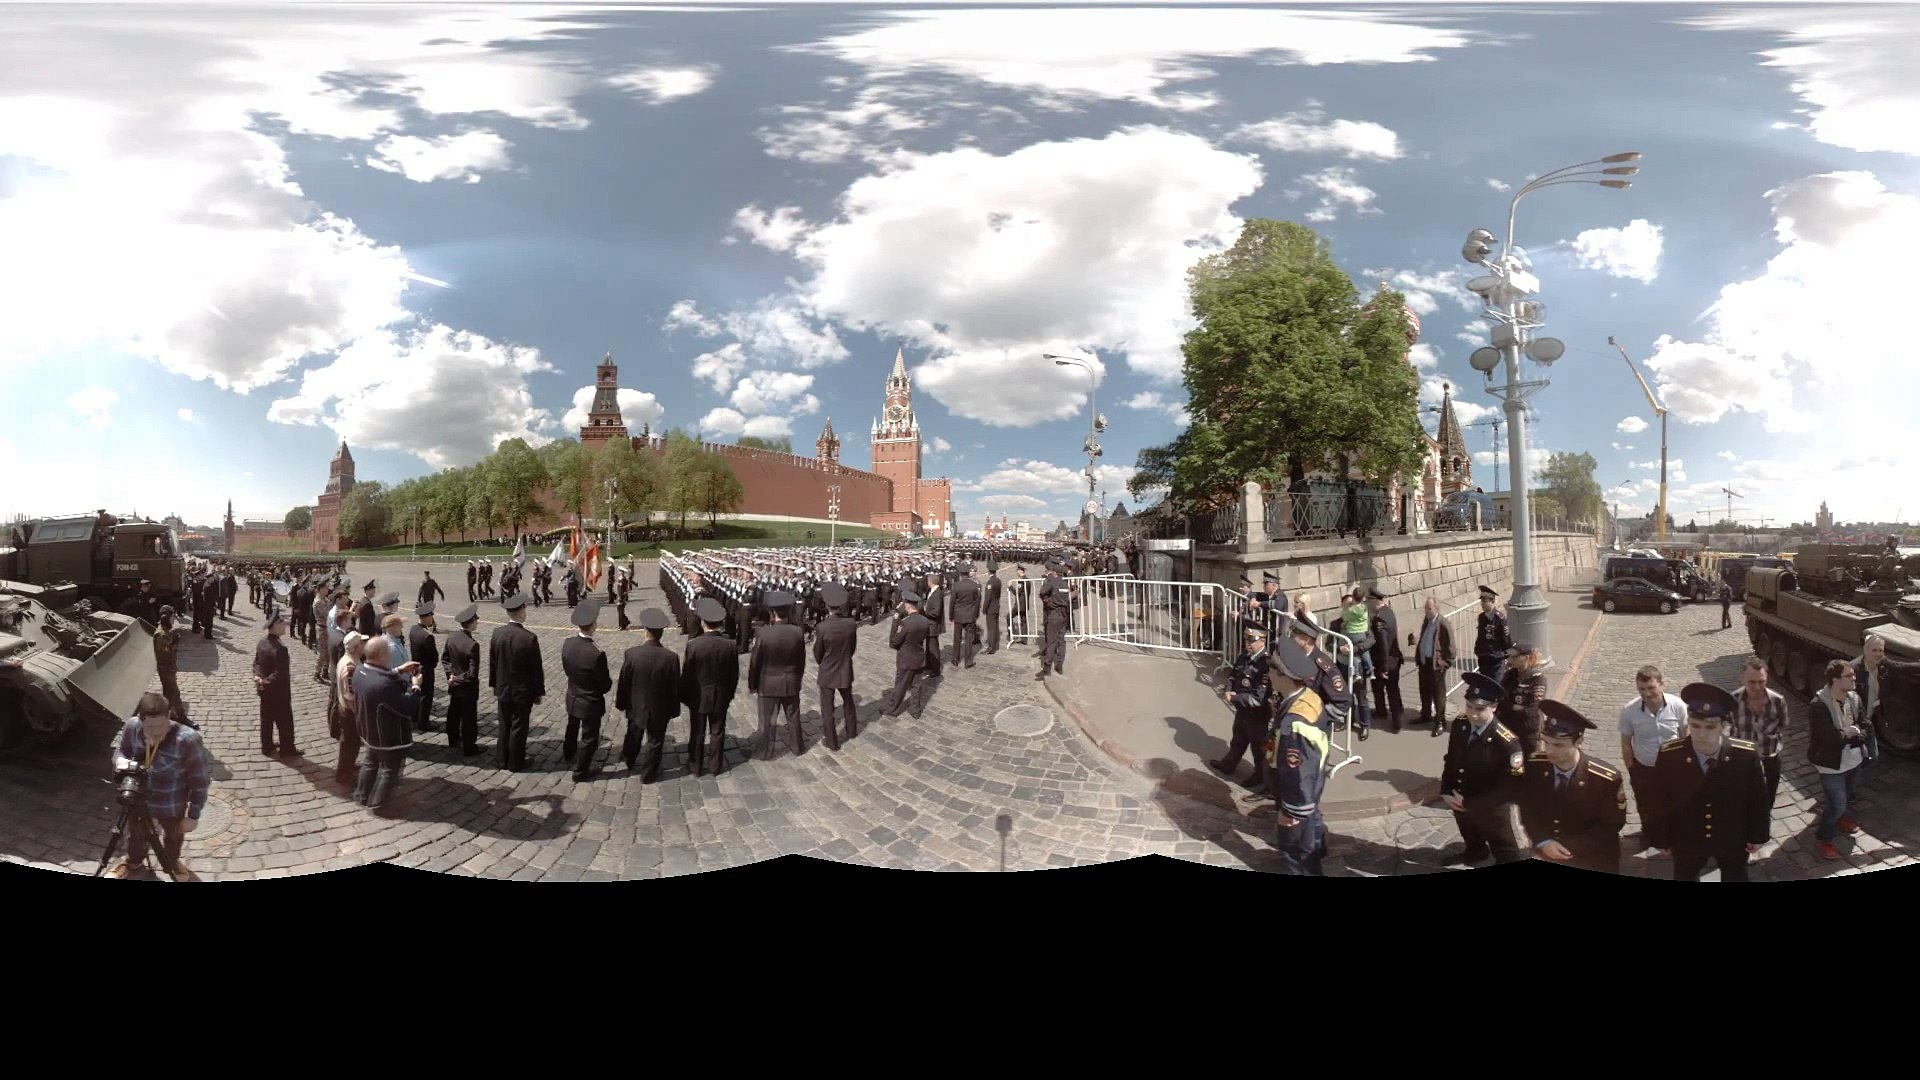 360 LIVE in HD׃ Moscow V-Day Parade panorama video 2016 / 360 парад 9 мая в Москве 2016